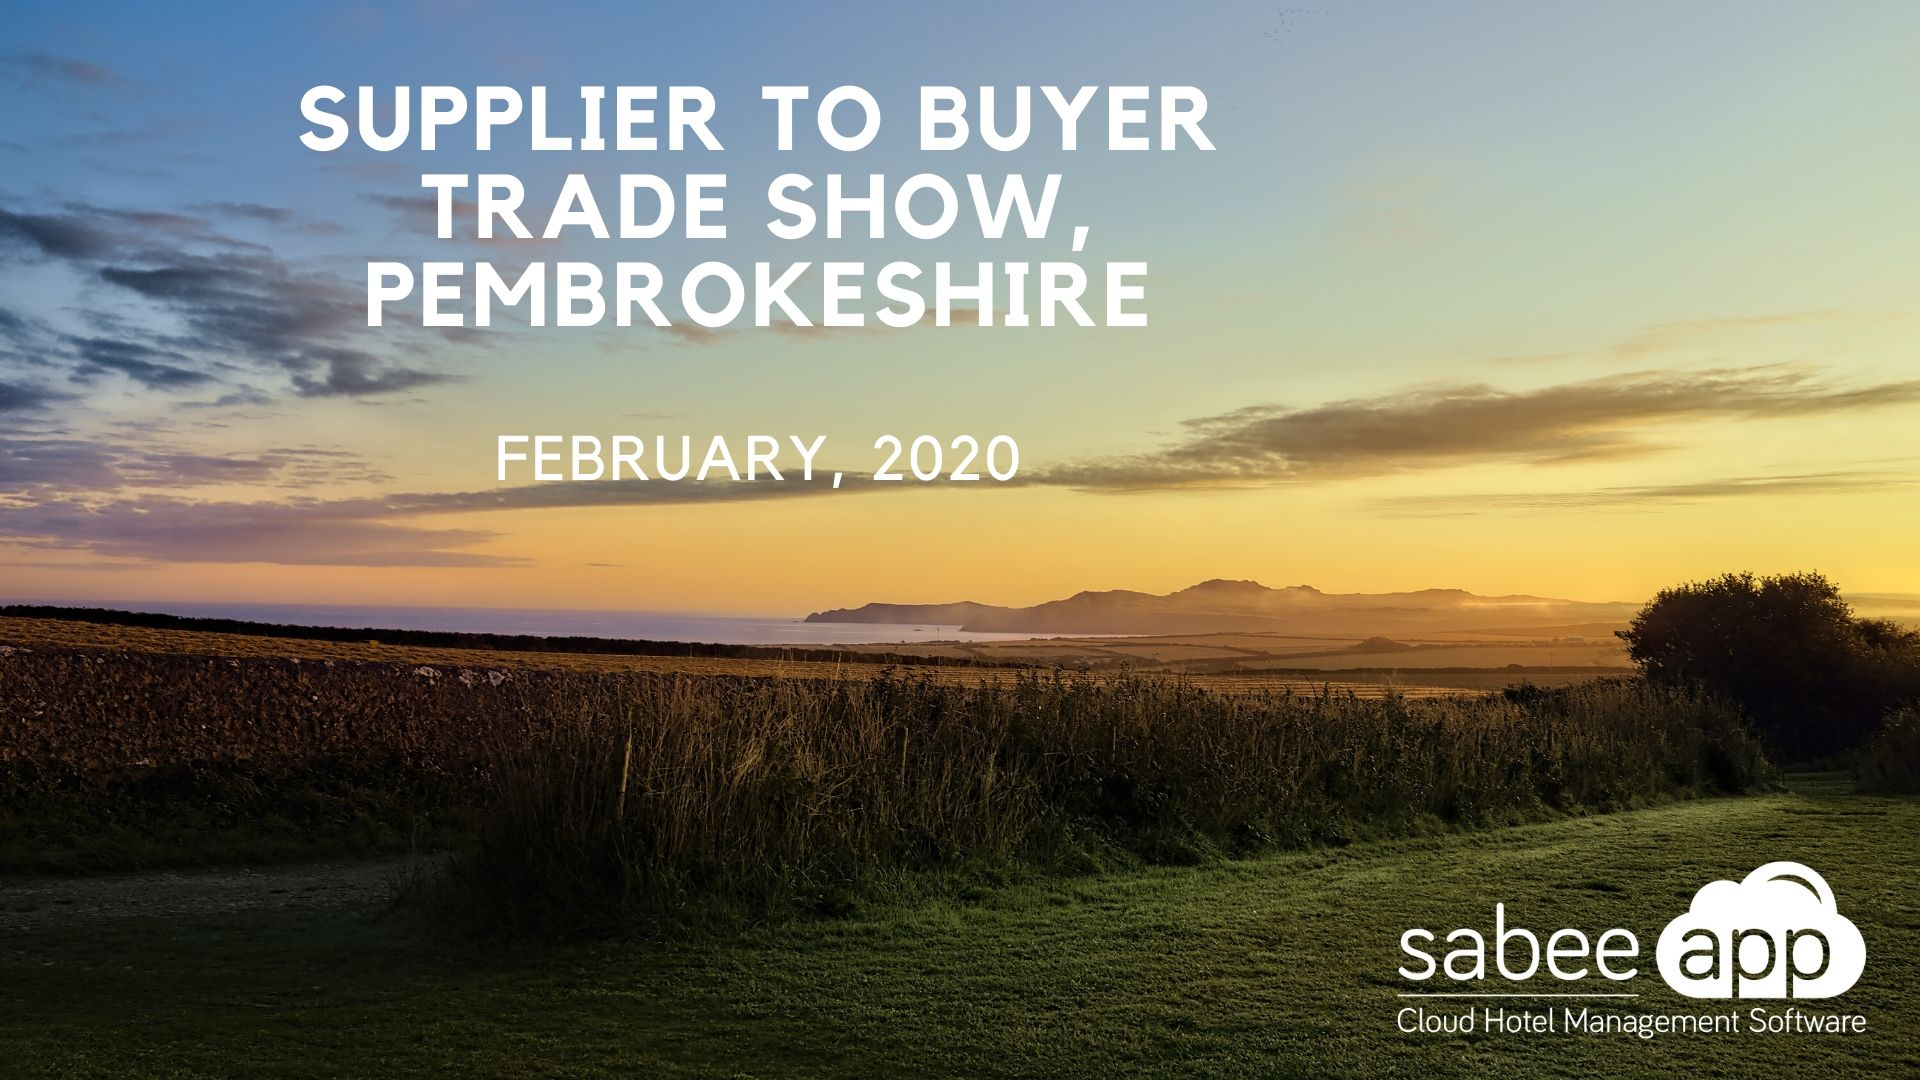 Supplier to buyer trade show, Pembrokeshire